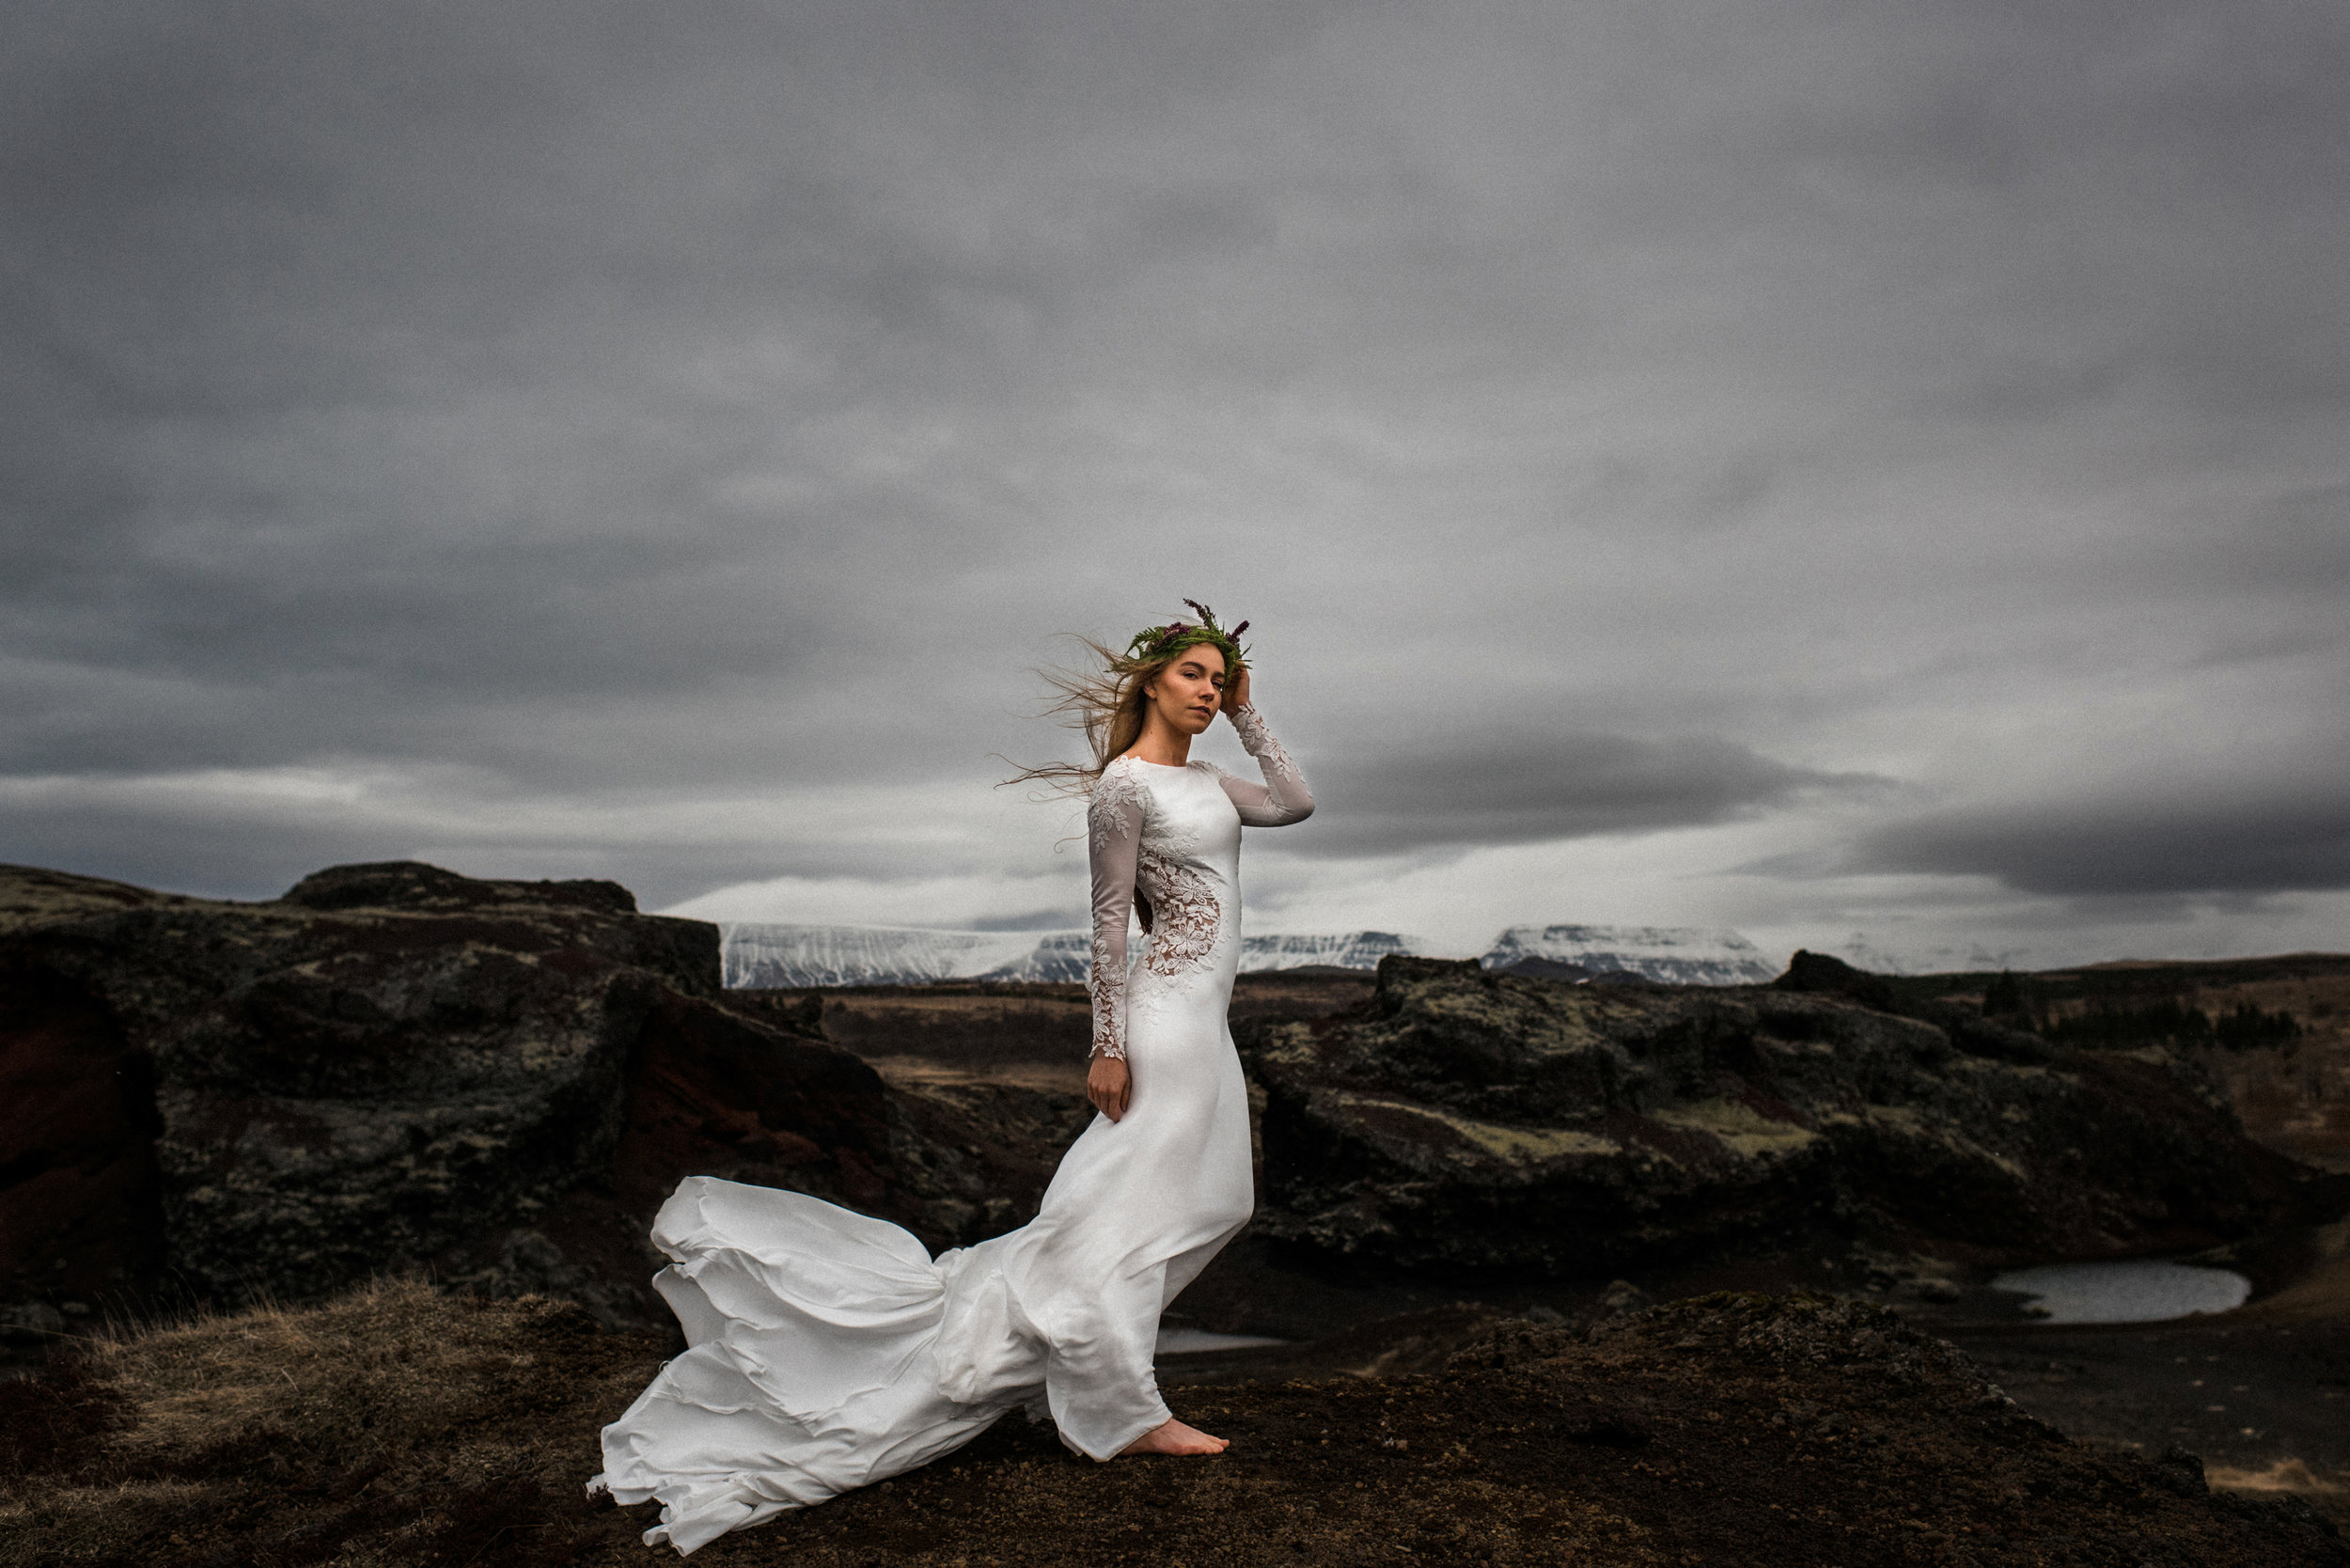 Iceland_TaraShupe_Photography_DSC_3461-FINAL-2.jpg